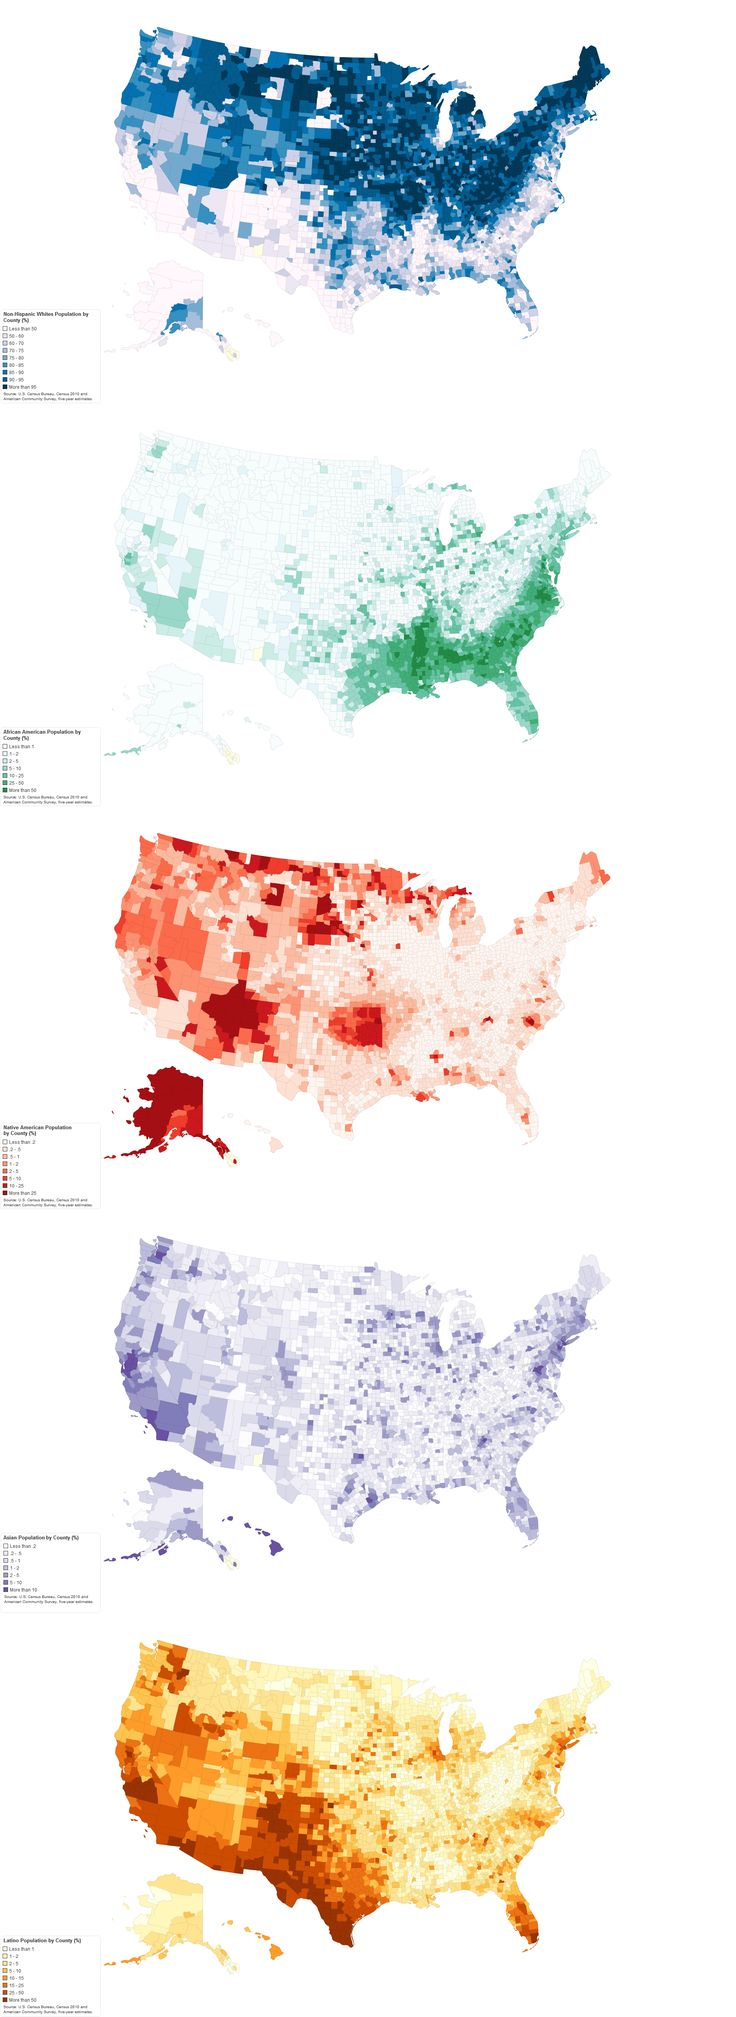 Population distribution by ethnicity in the United States.